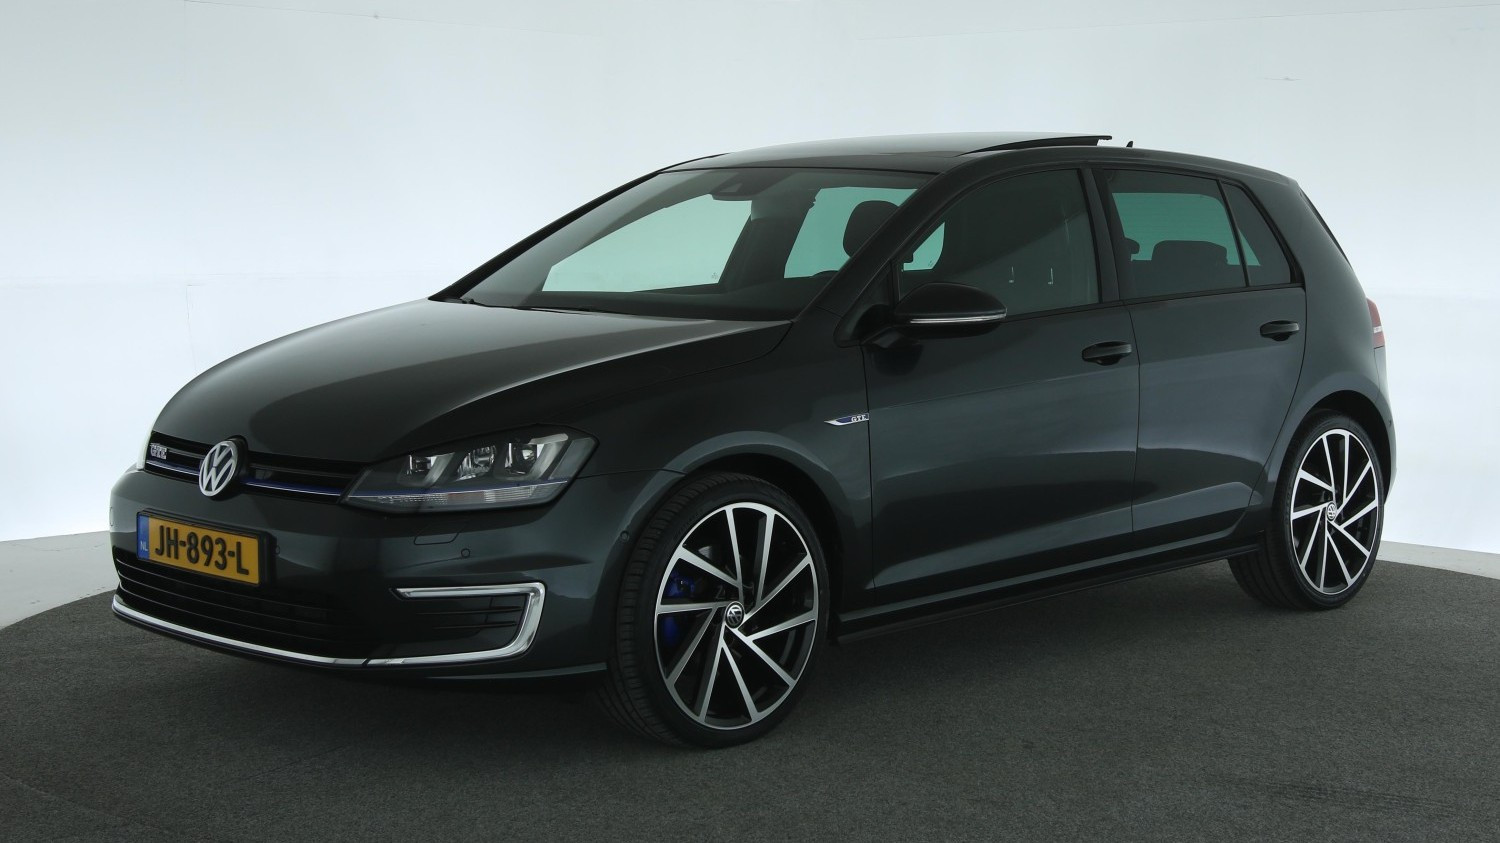 Volkswagen Golf Hatchback 2015 JH-893-L 1